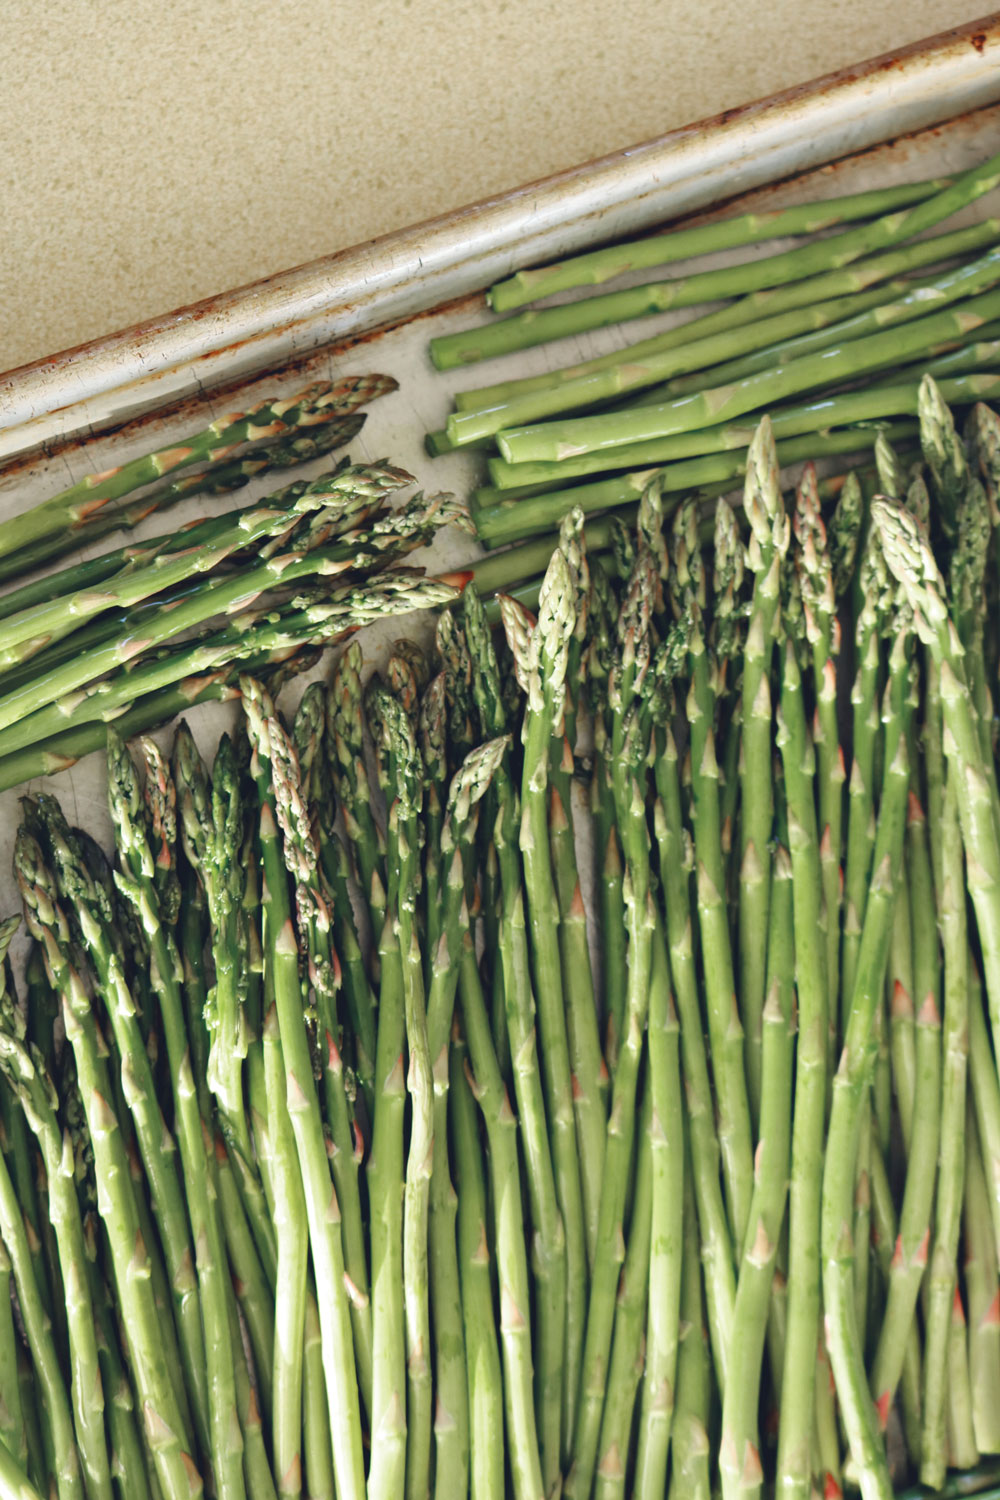 asparagus-bunch-close-up-2069280.jpg